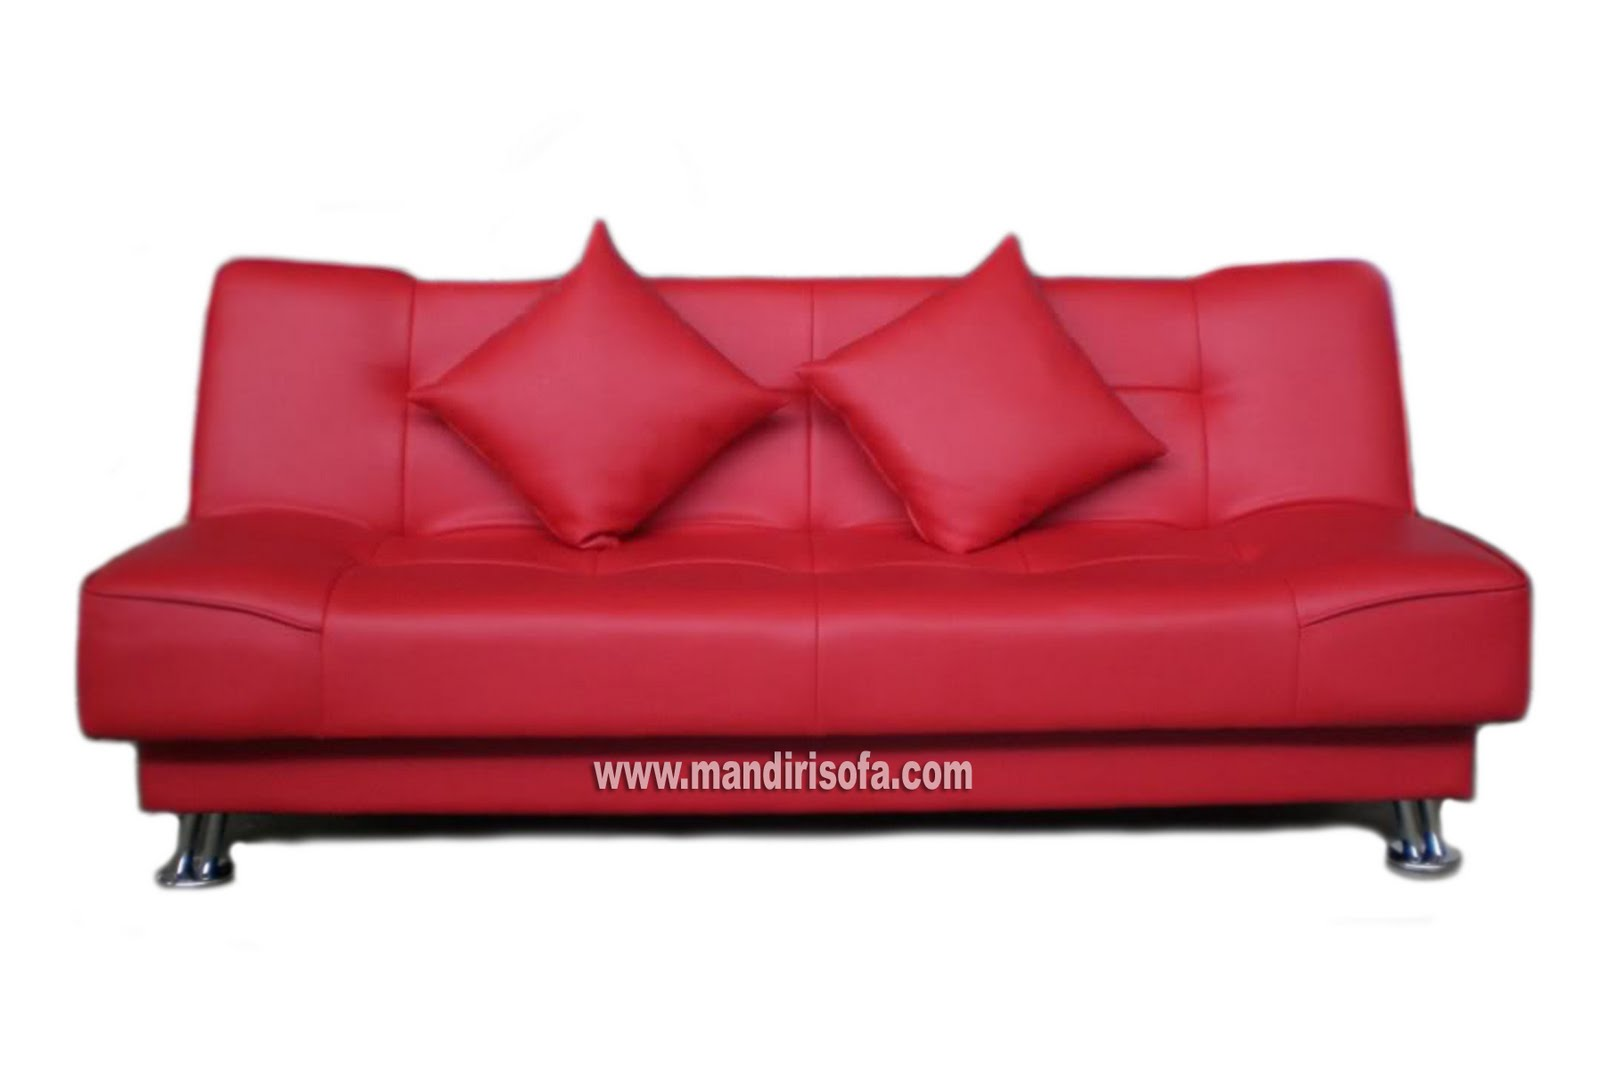 sofa bed lipat murah di surabaya saddlemen road seat with driver backrest harga malaysia informasi jual beli